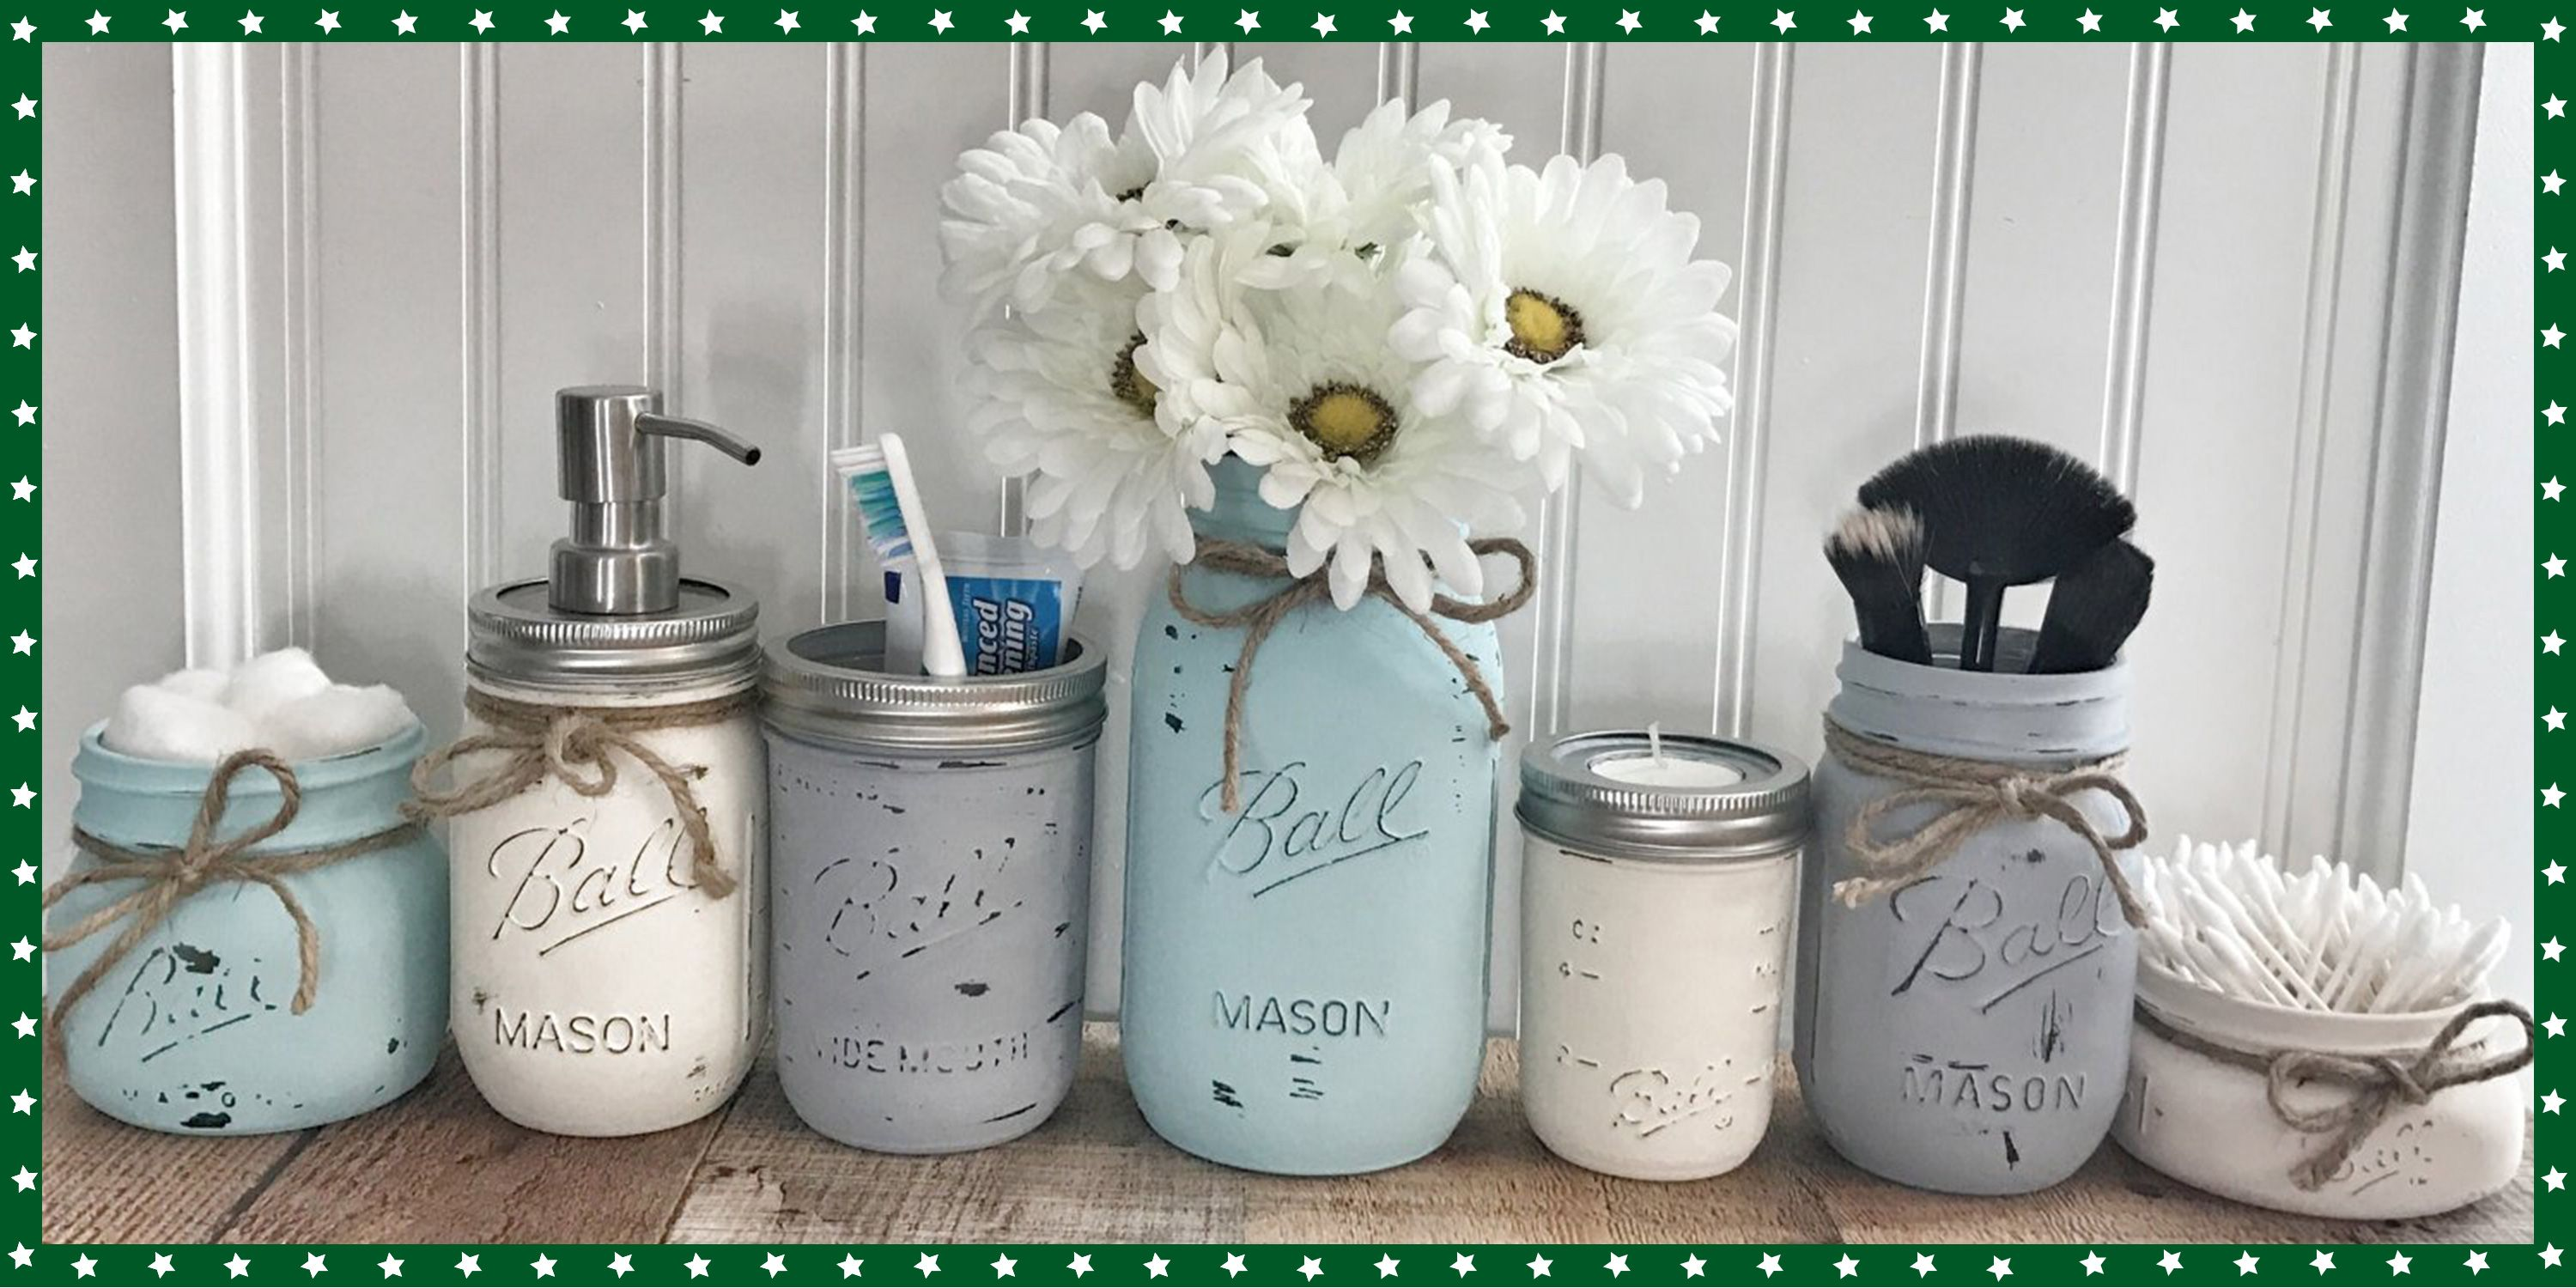 30 Mason Jar Gifts for Christmas , Cute Gift Ideas with